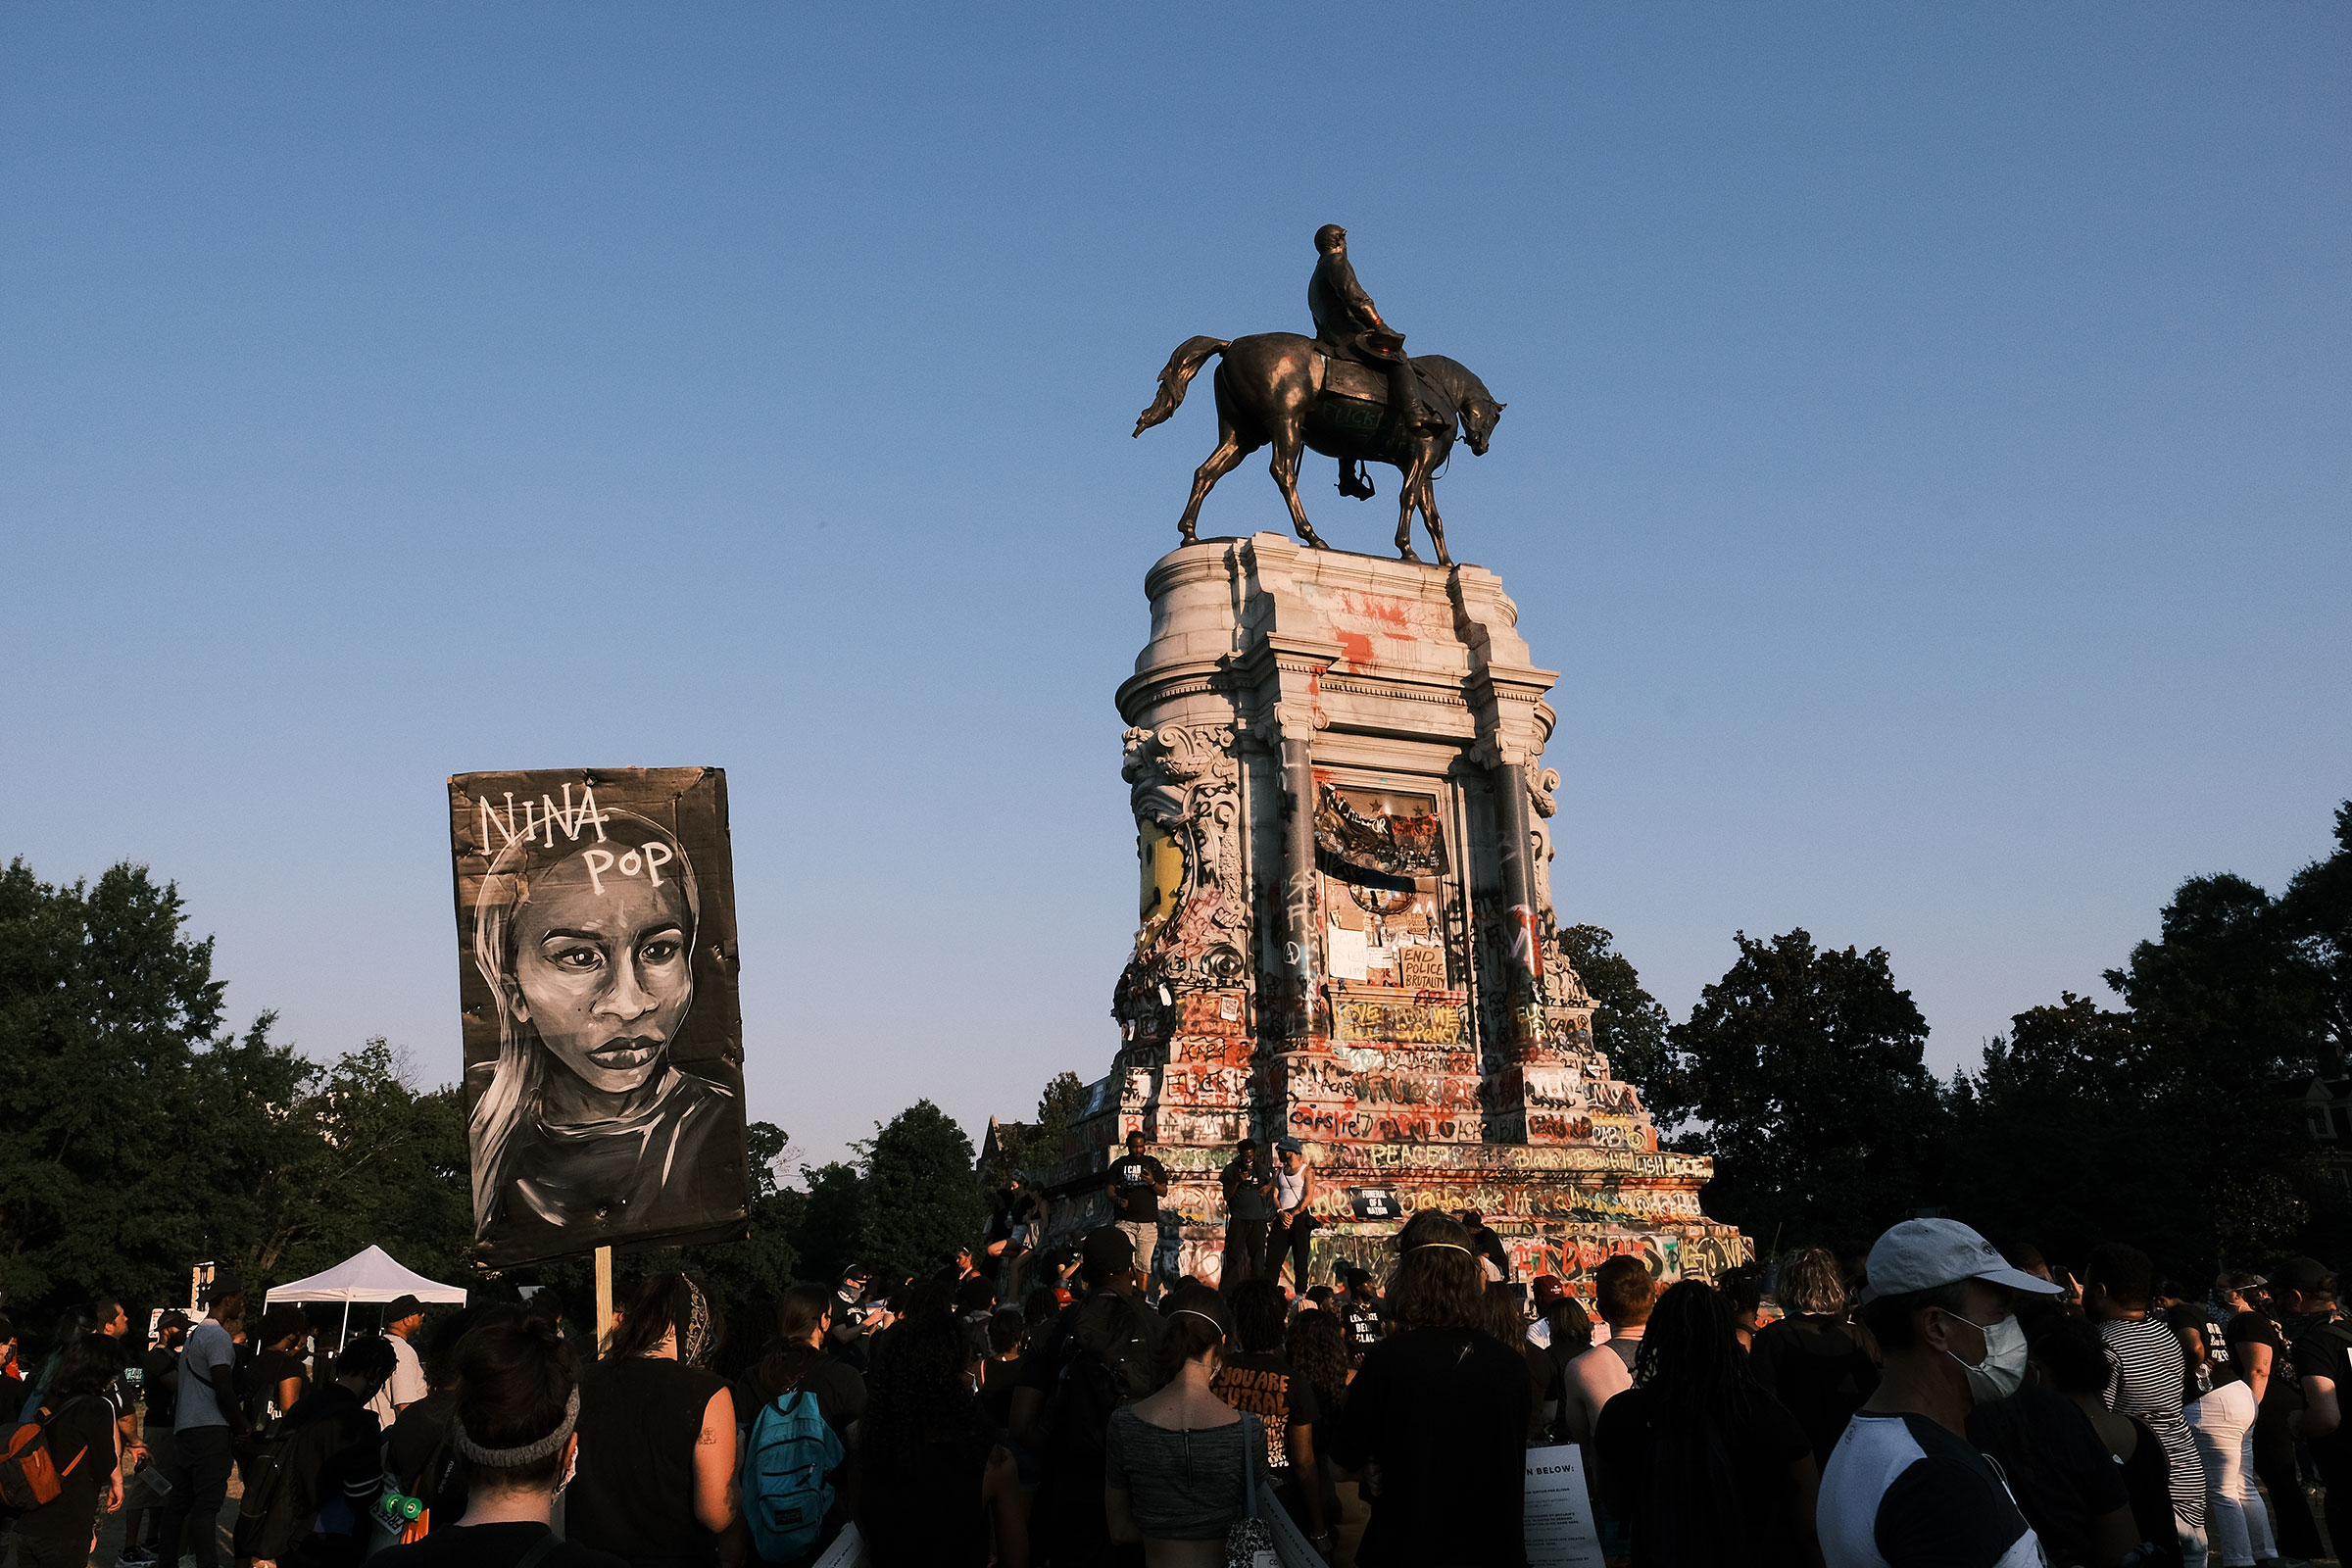 A banner showing the face of Nina Pop at the Lee statue during Black Women Matter  Say Her Name  march on July 3, 2020 in Richmond, Virginia.